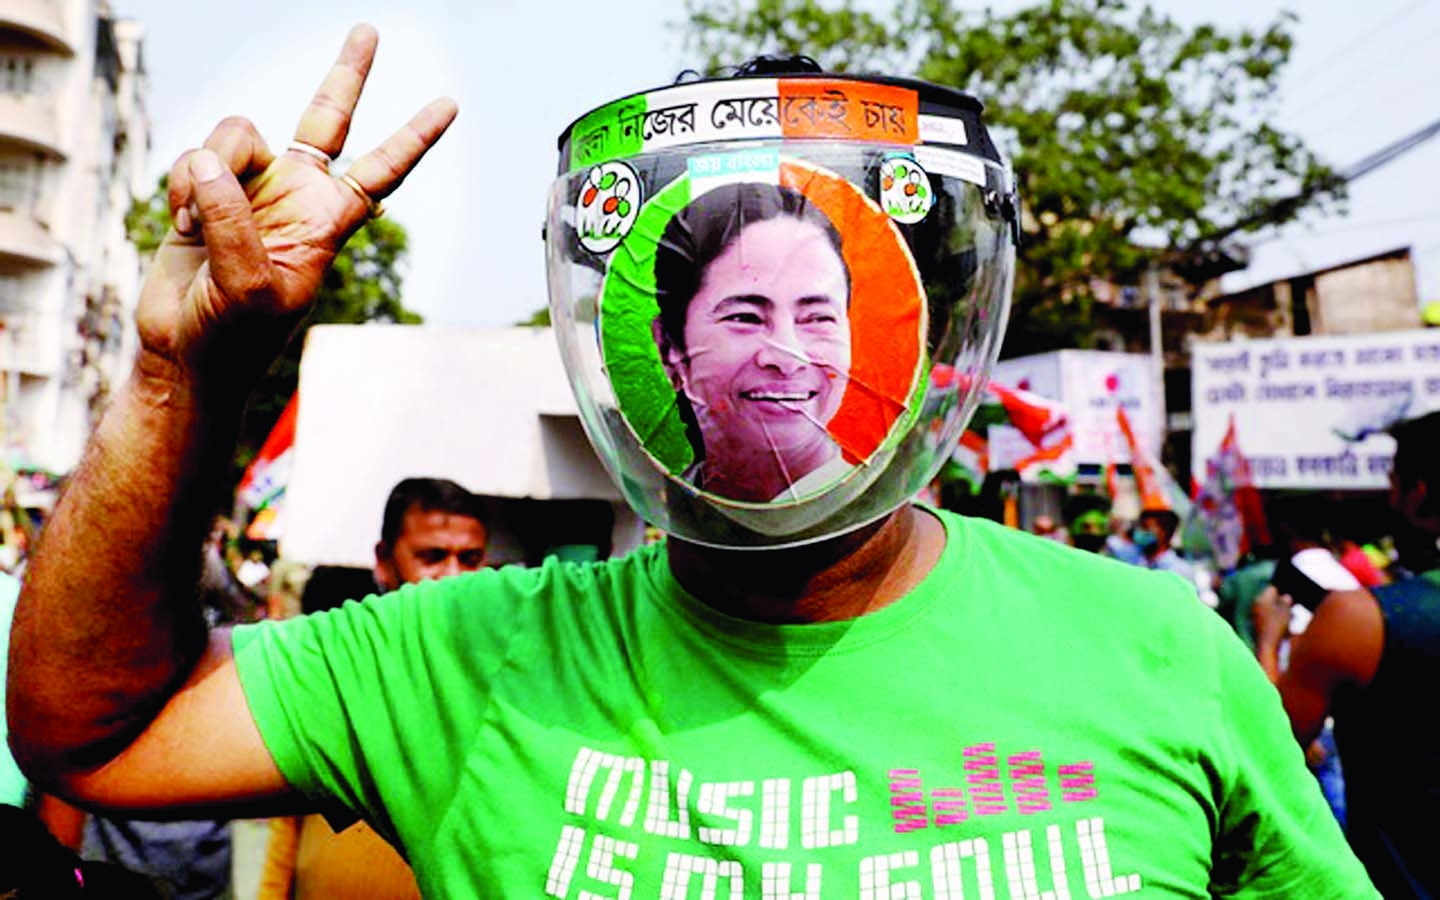 Victory belongs to people of West Bengal: Mamata after Trinamool's massive win